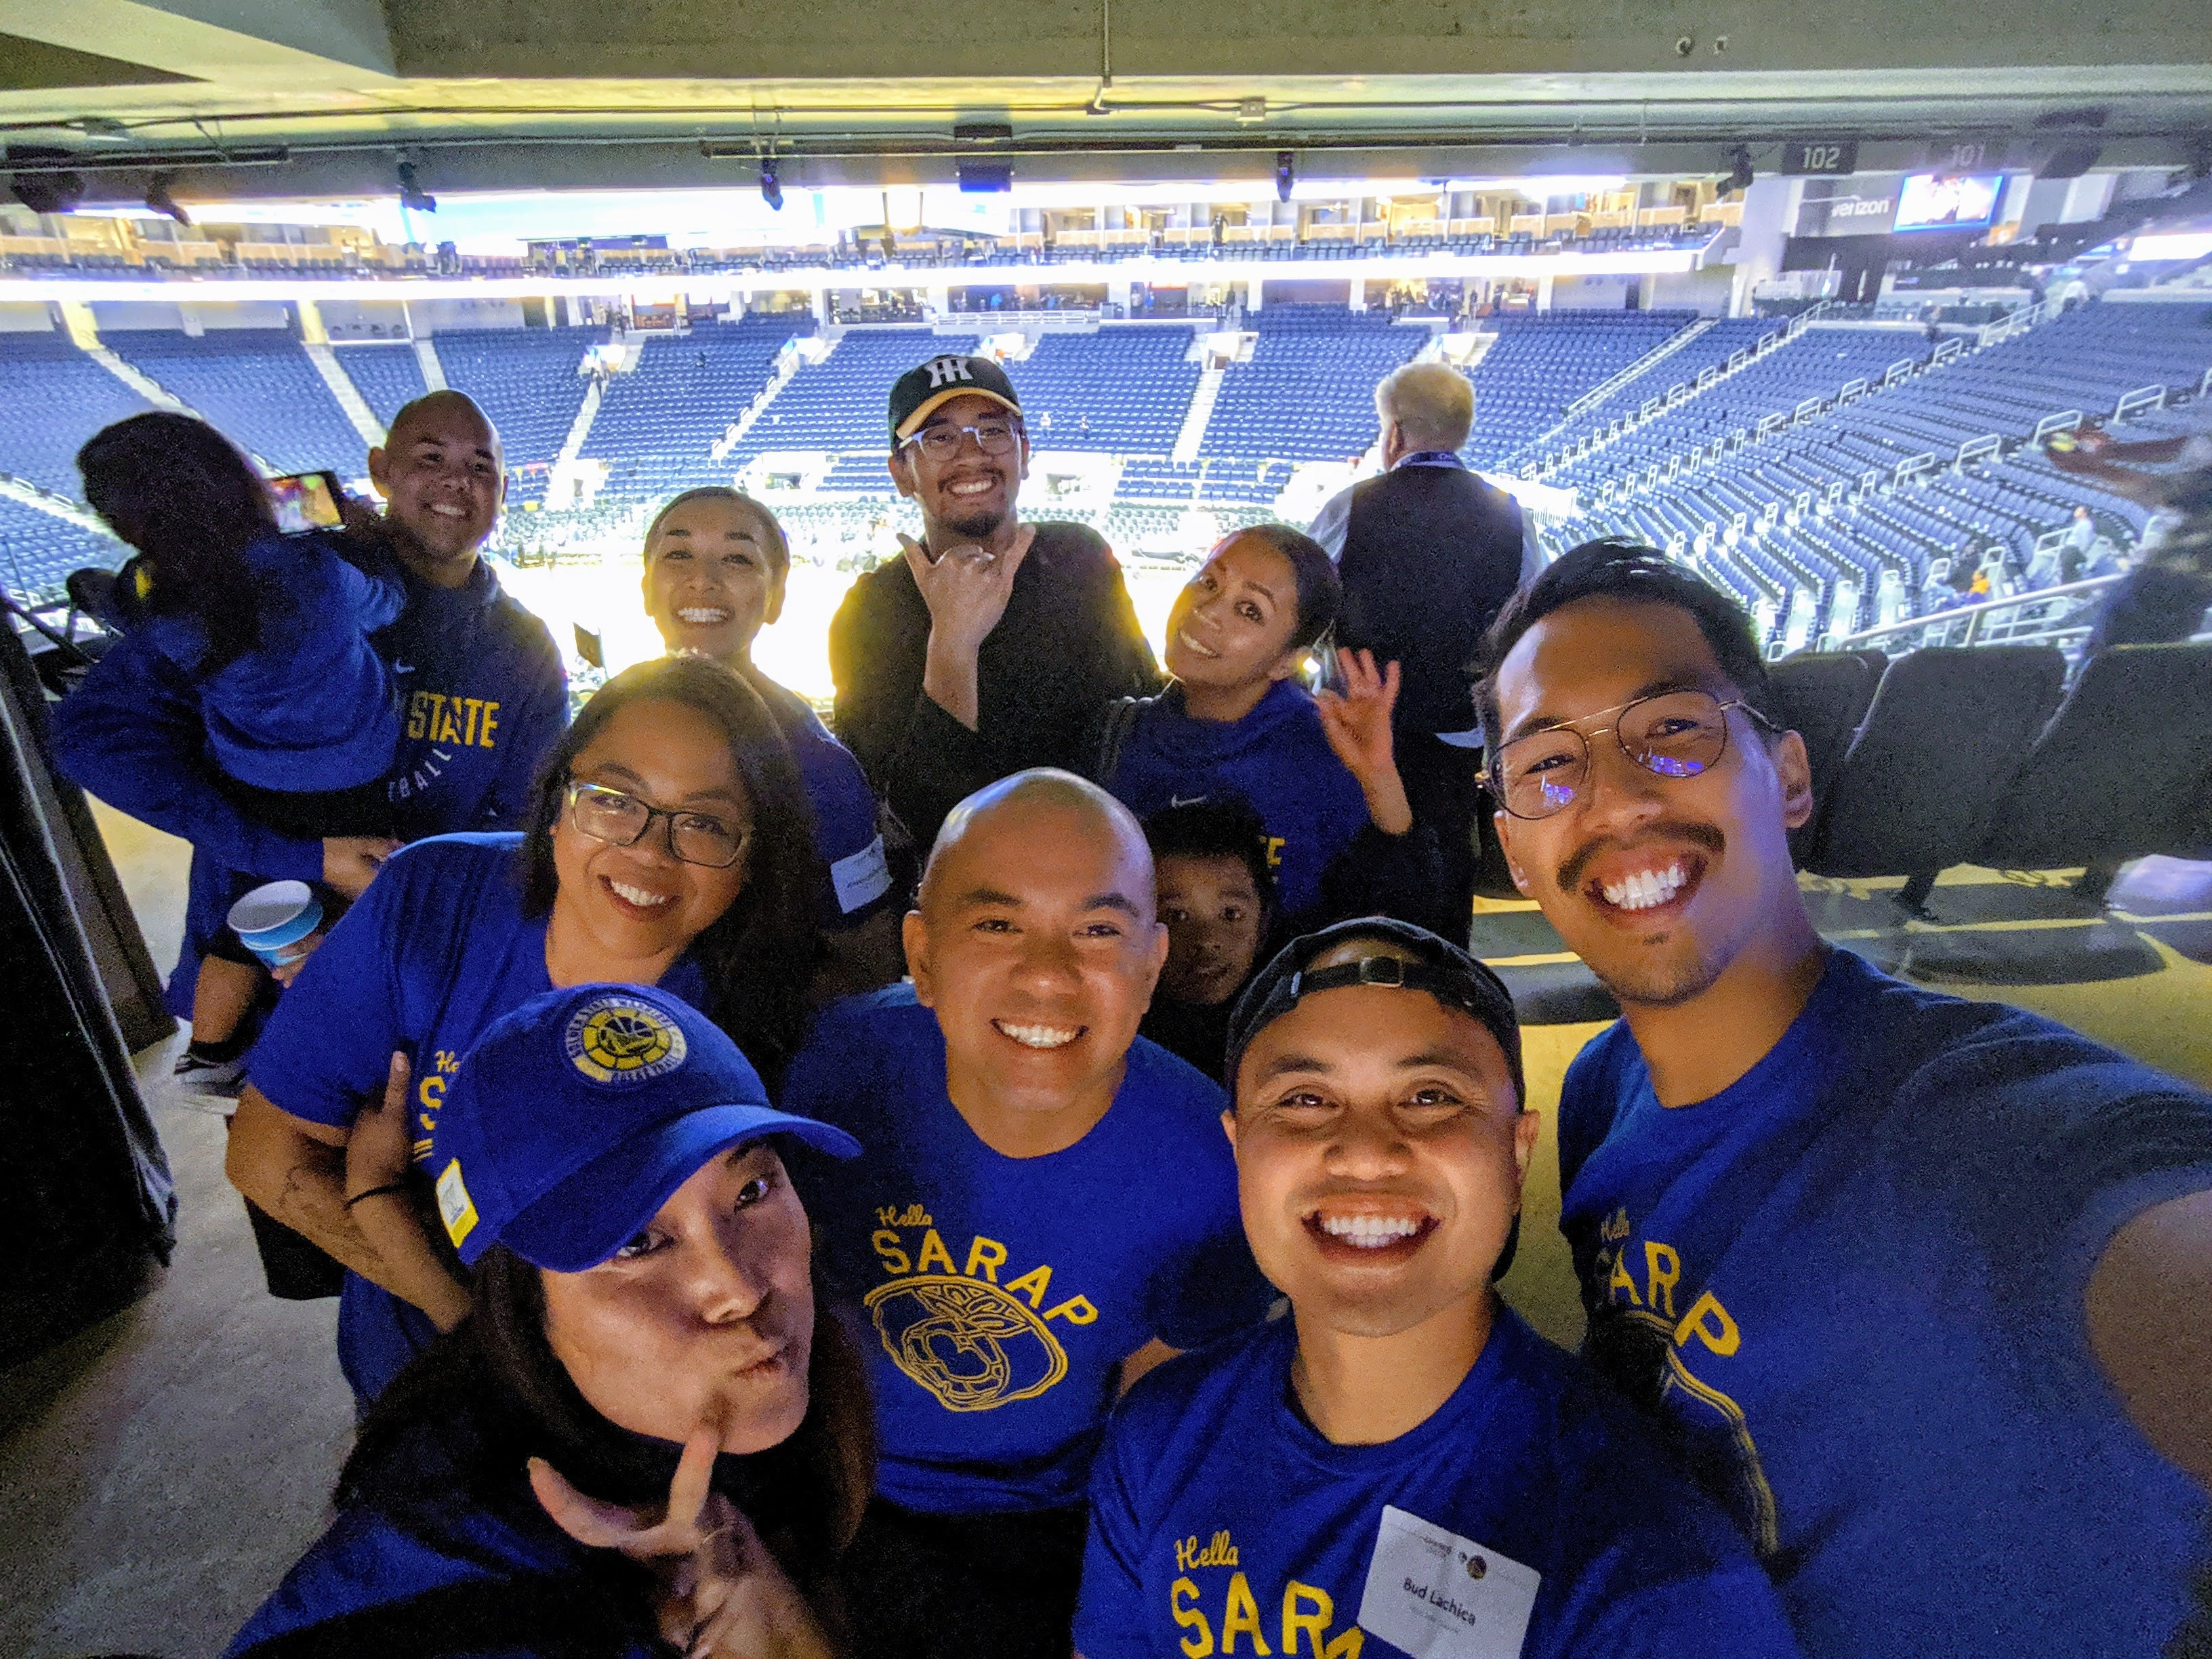 Team Sarap at the Warriors Chase Center Arena